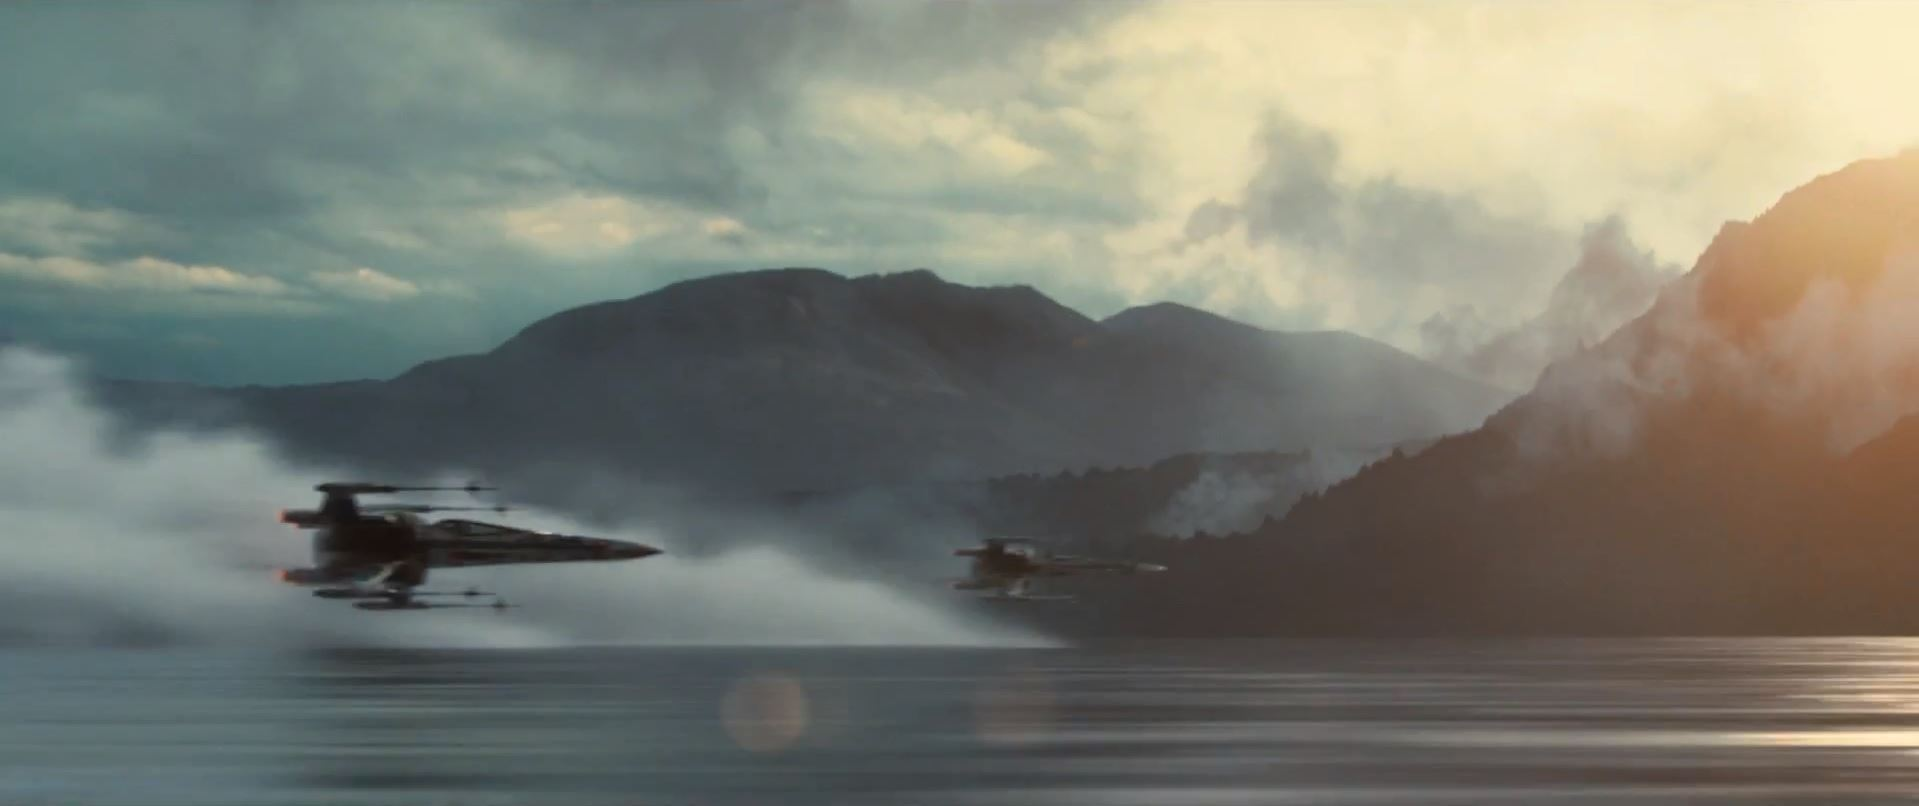 X-wing flying over water surface - Star Wars Episode 7 trailer released